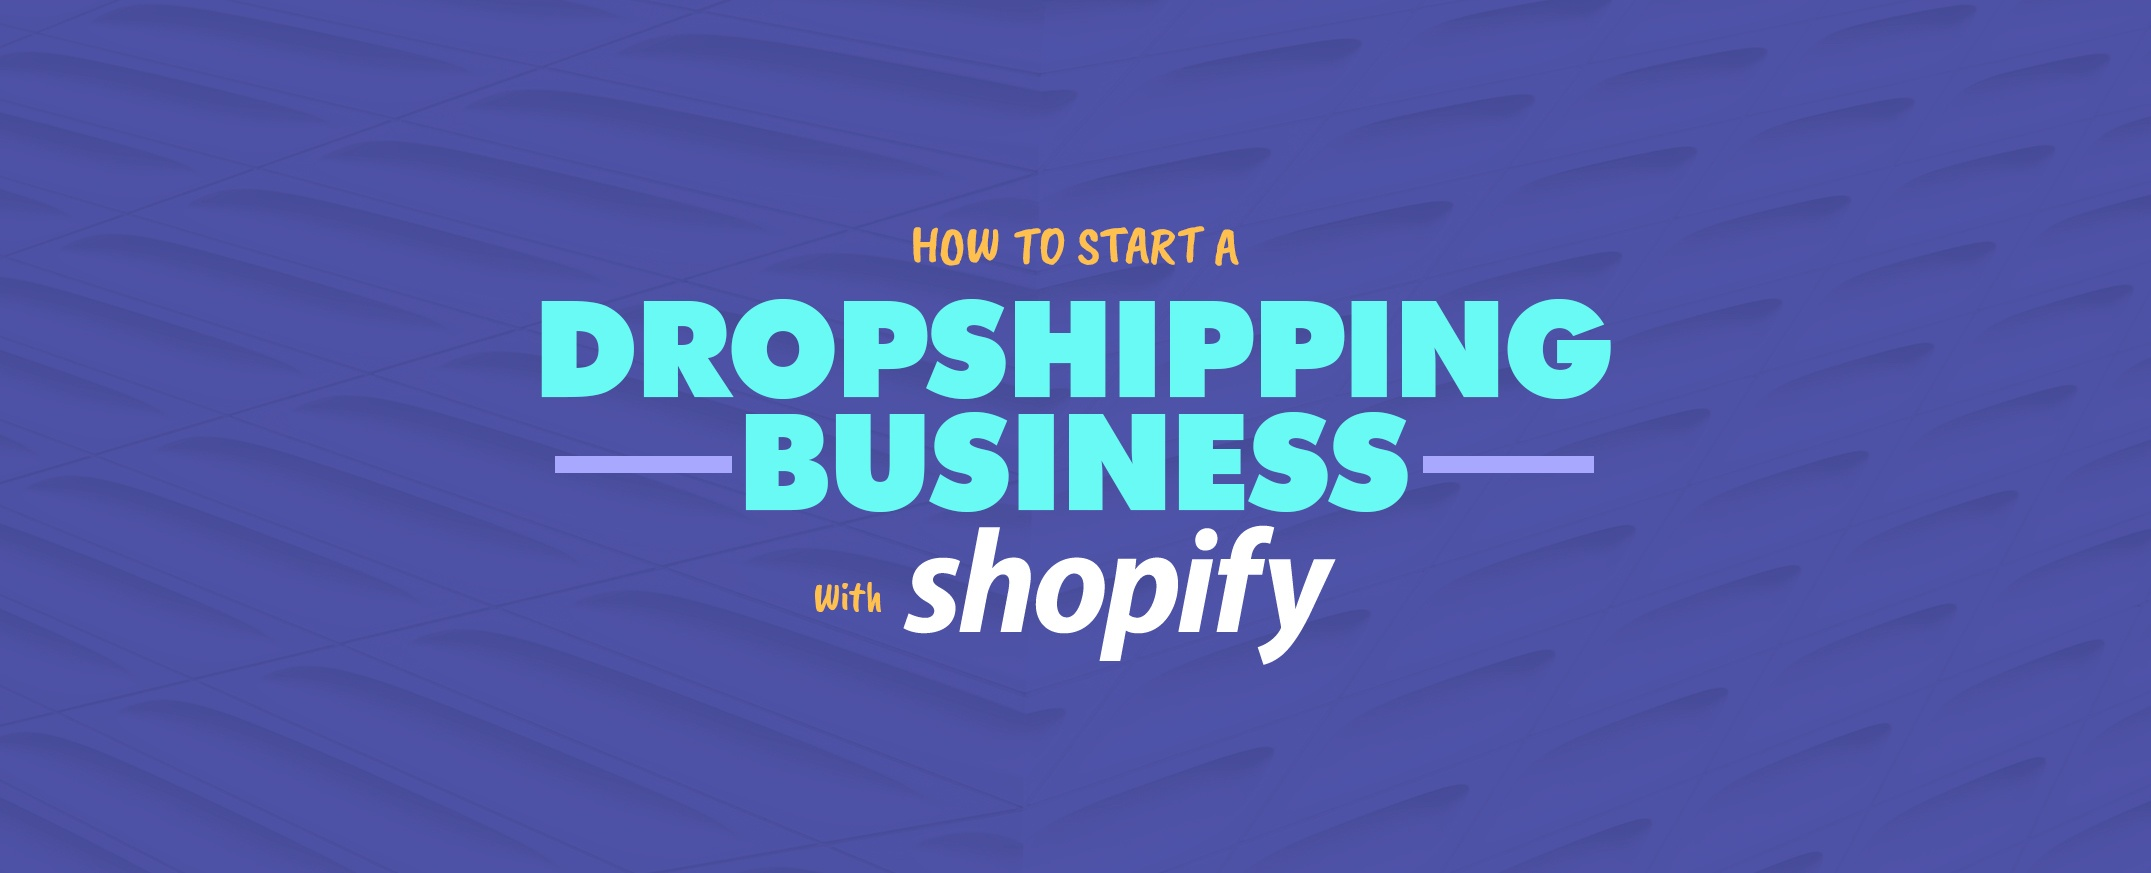 How-to-Start-a-Dropshipping-Business-with-Shopify---Ultimate-Guide